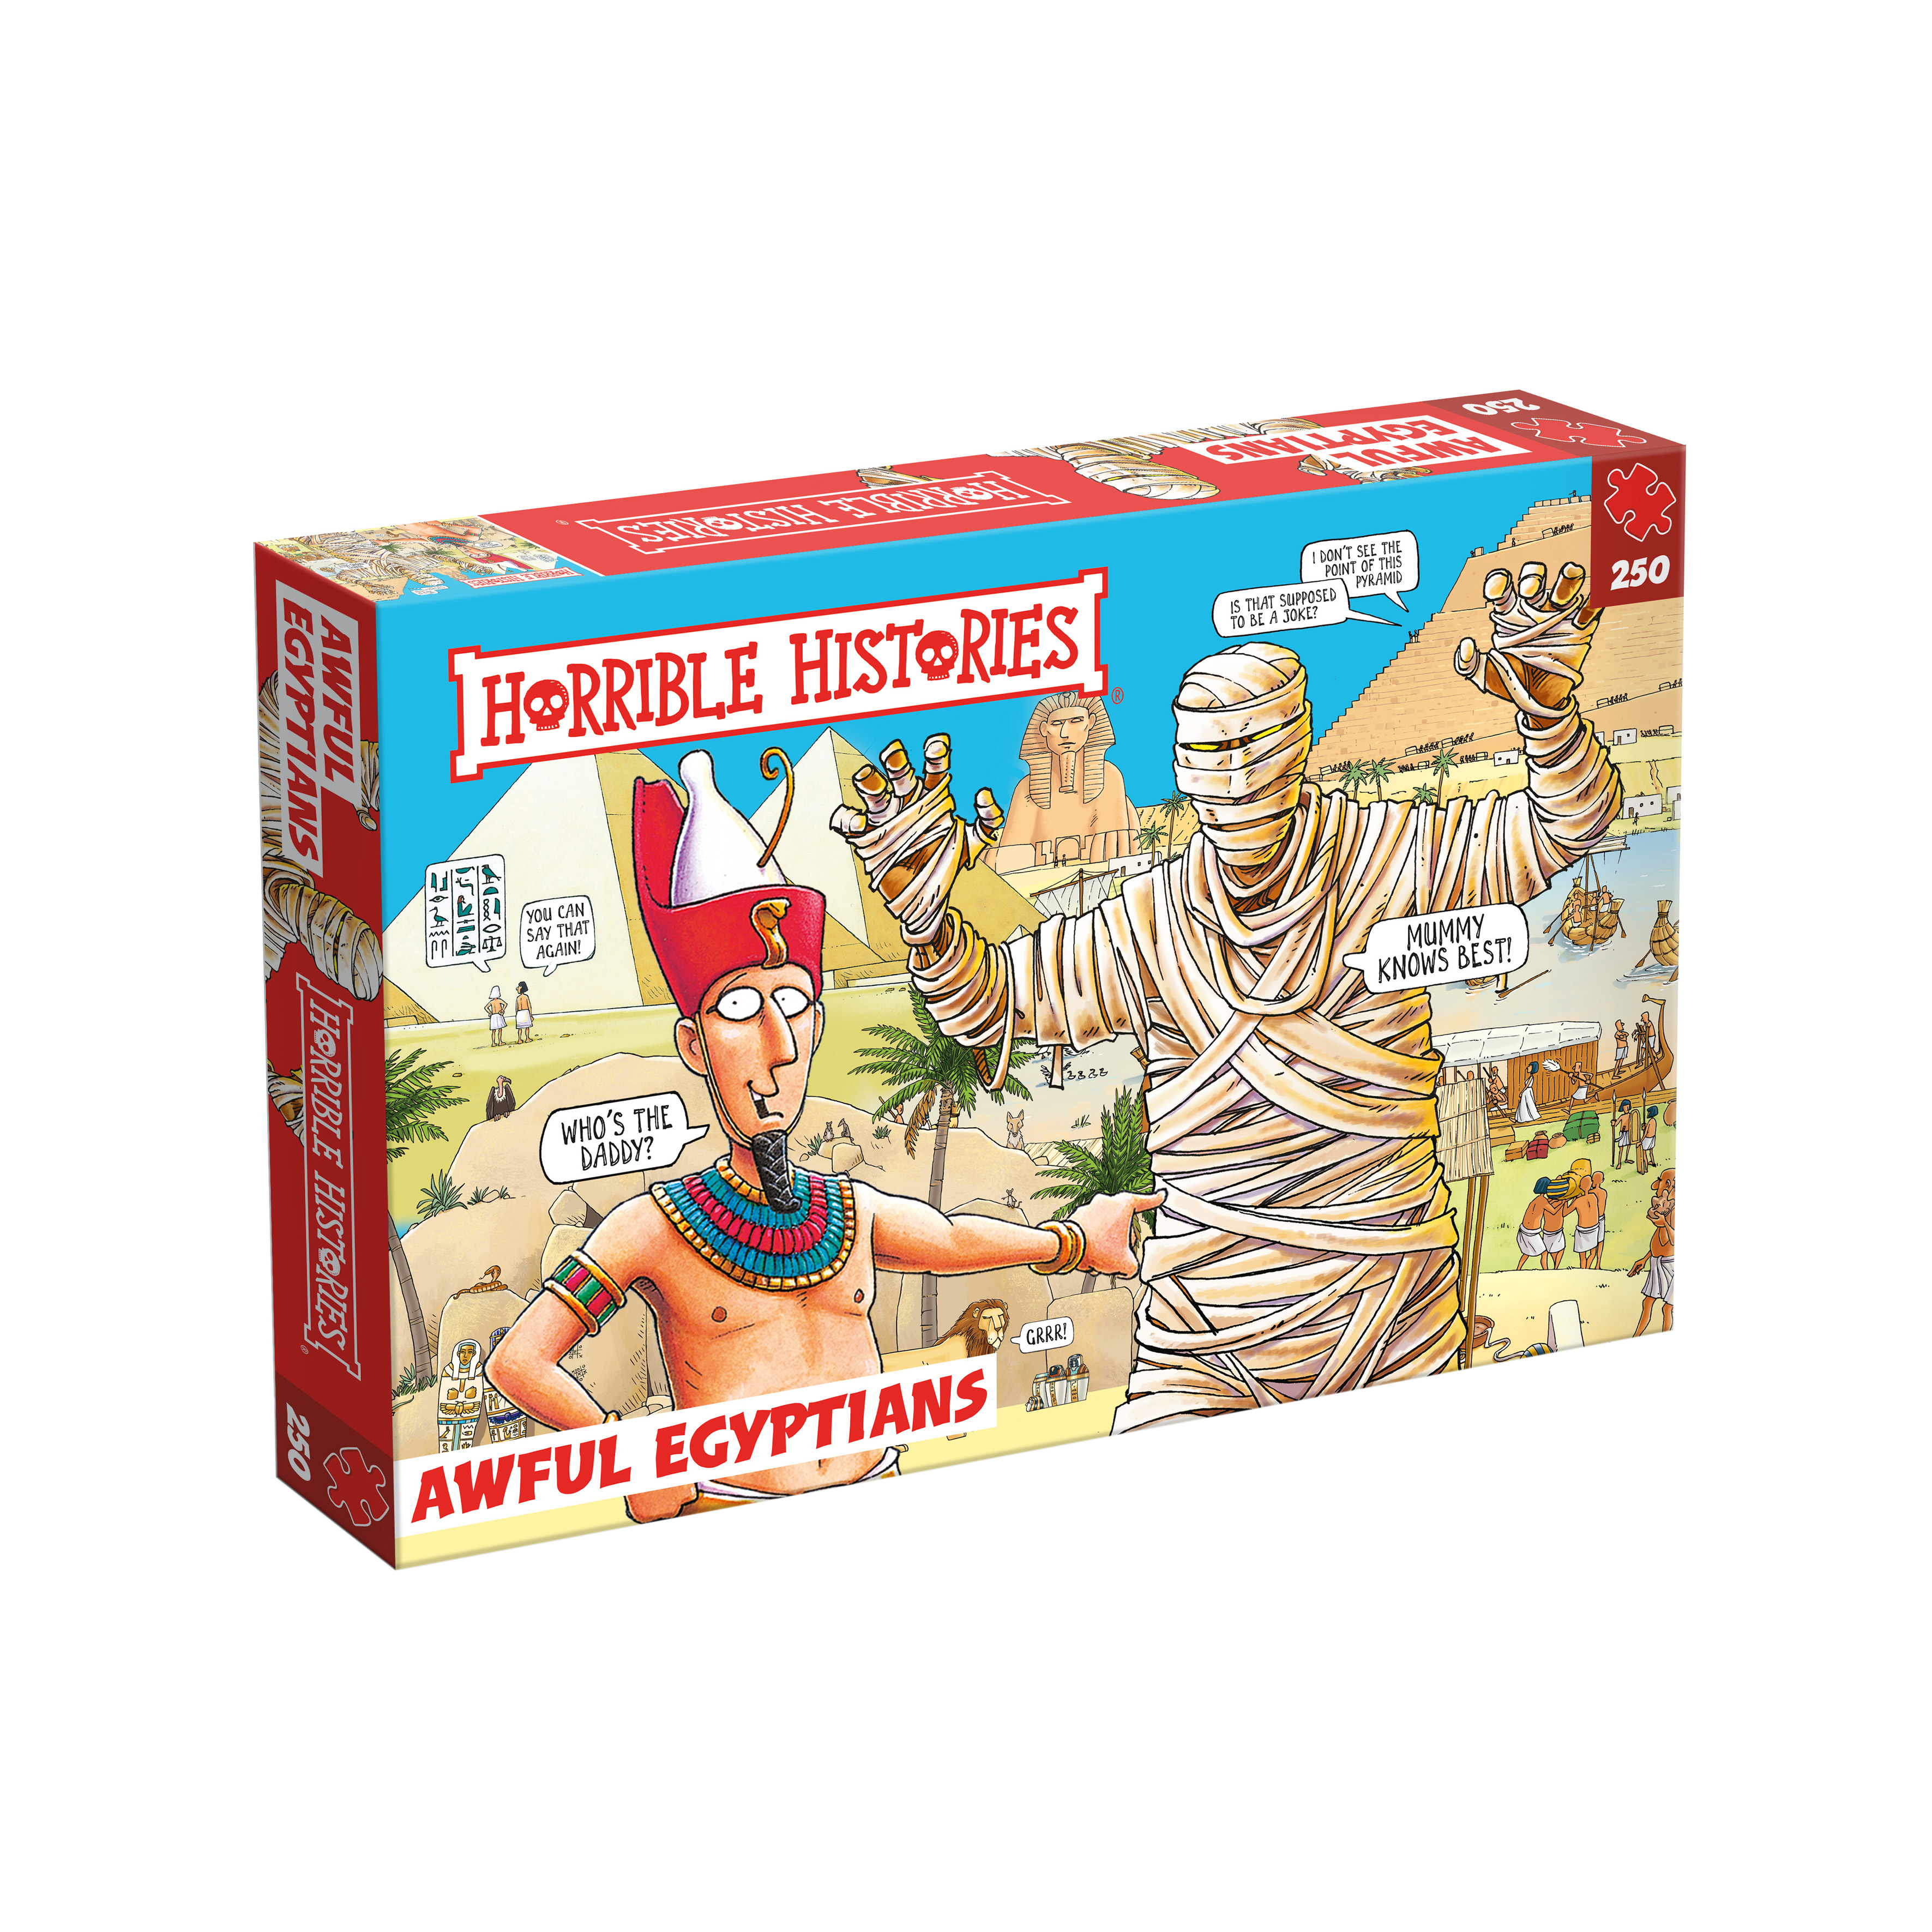 Horrible histories jigsaw puzzle (awful Egyptians)